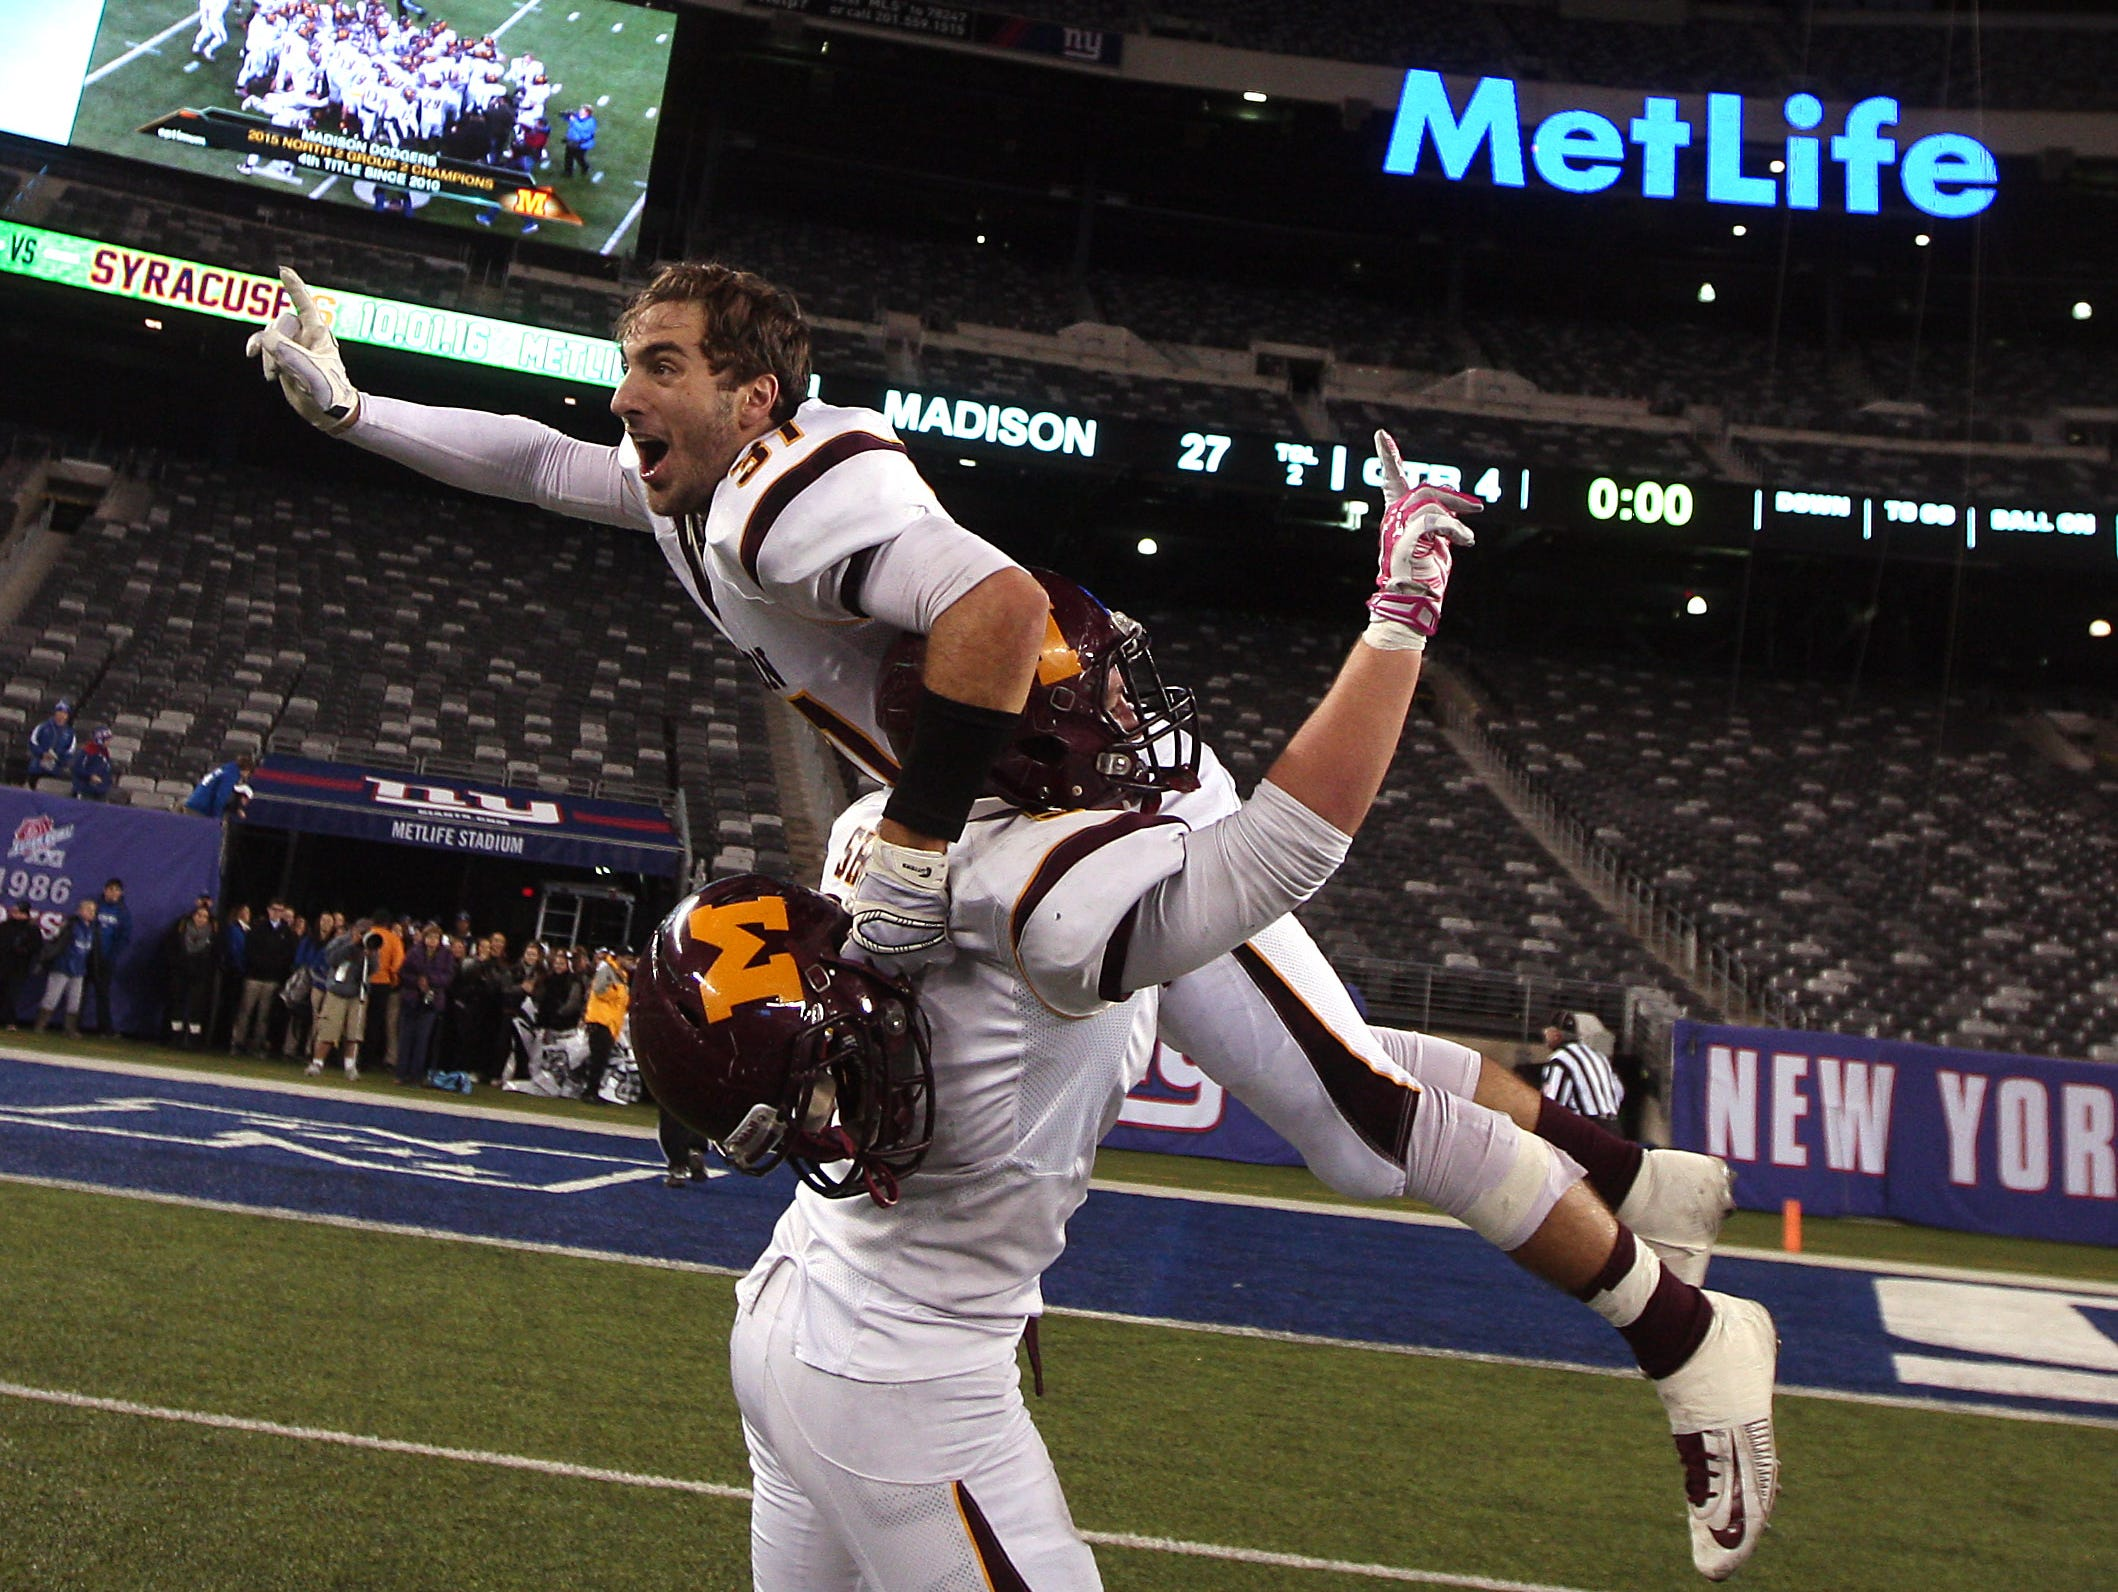 Madison's Zach Shupe lifts up teammate Justin Dalena after the Dodgers beat Rutherford in the North 2, Group 2 NJSIAA football Championship at MetLife Stadium. Madison won 27-6. December 3, 2015, East Rutherford, NJ.